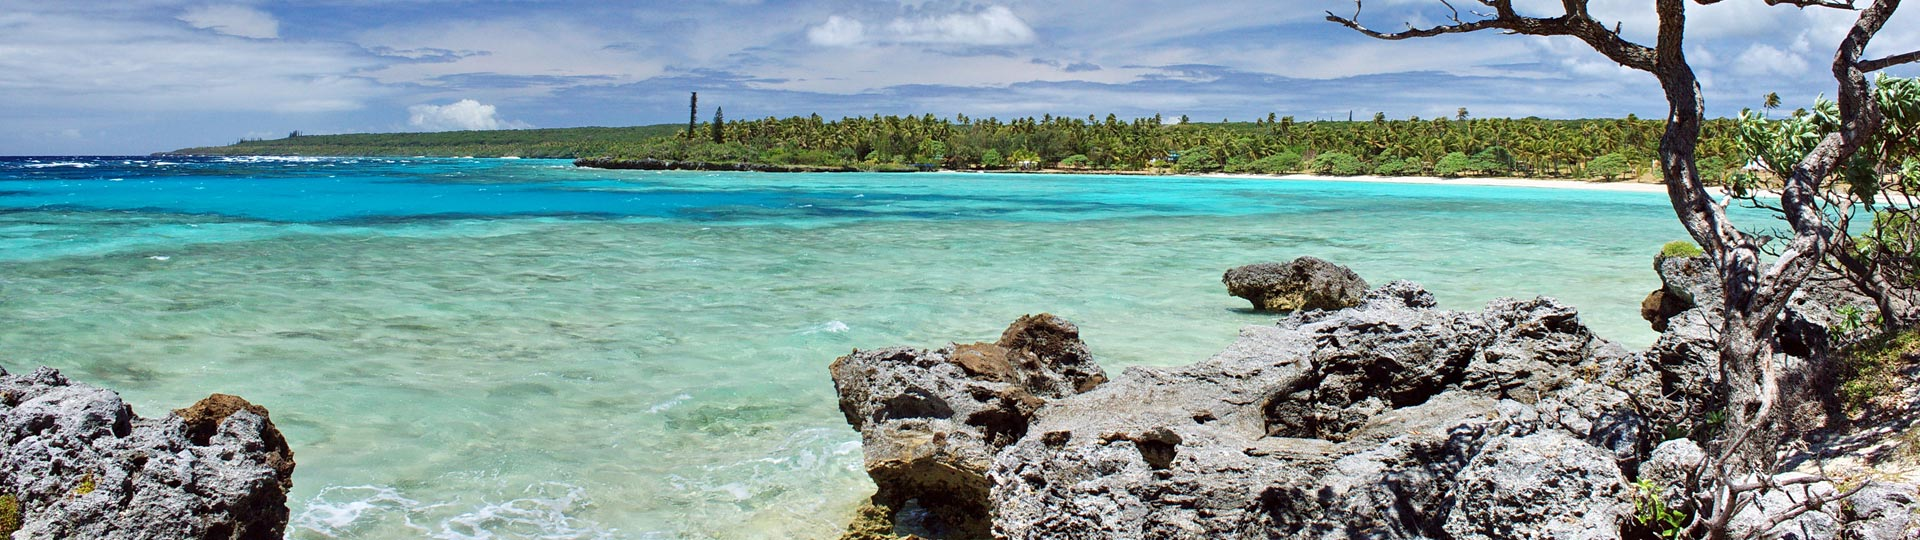 Lagoon in Lifou Iles Loyauté in New Caledonia